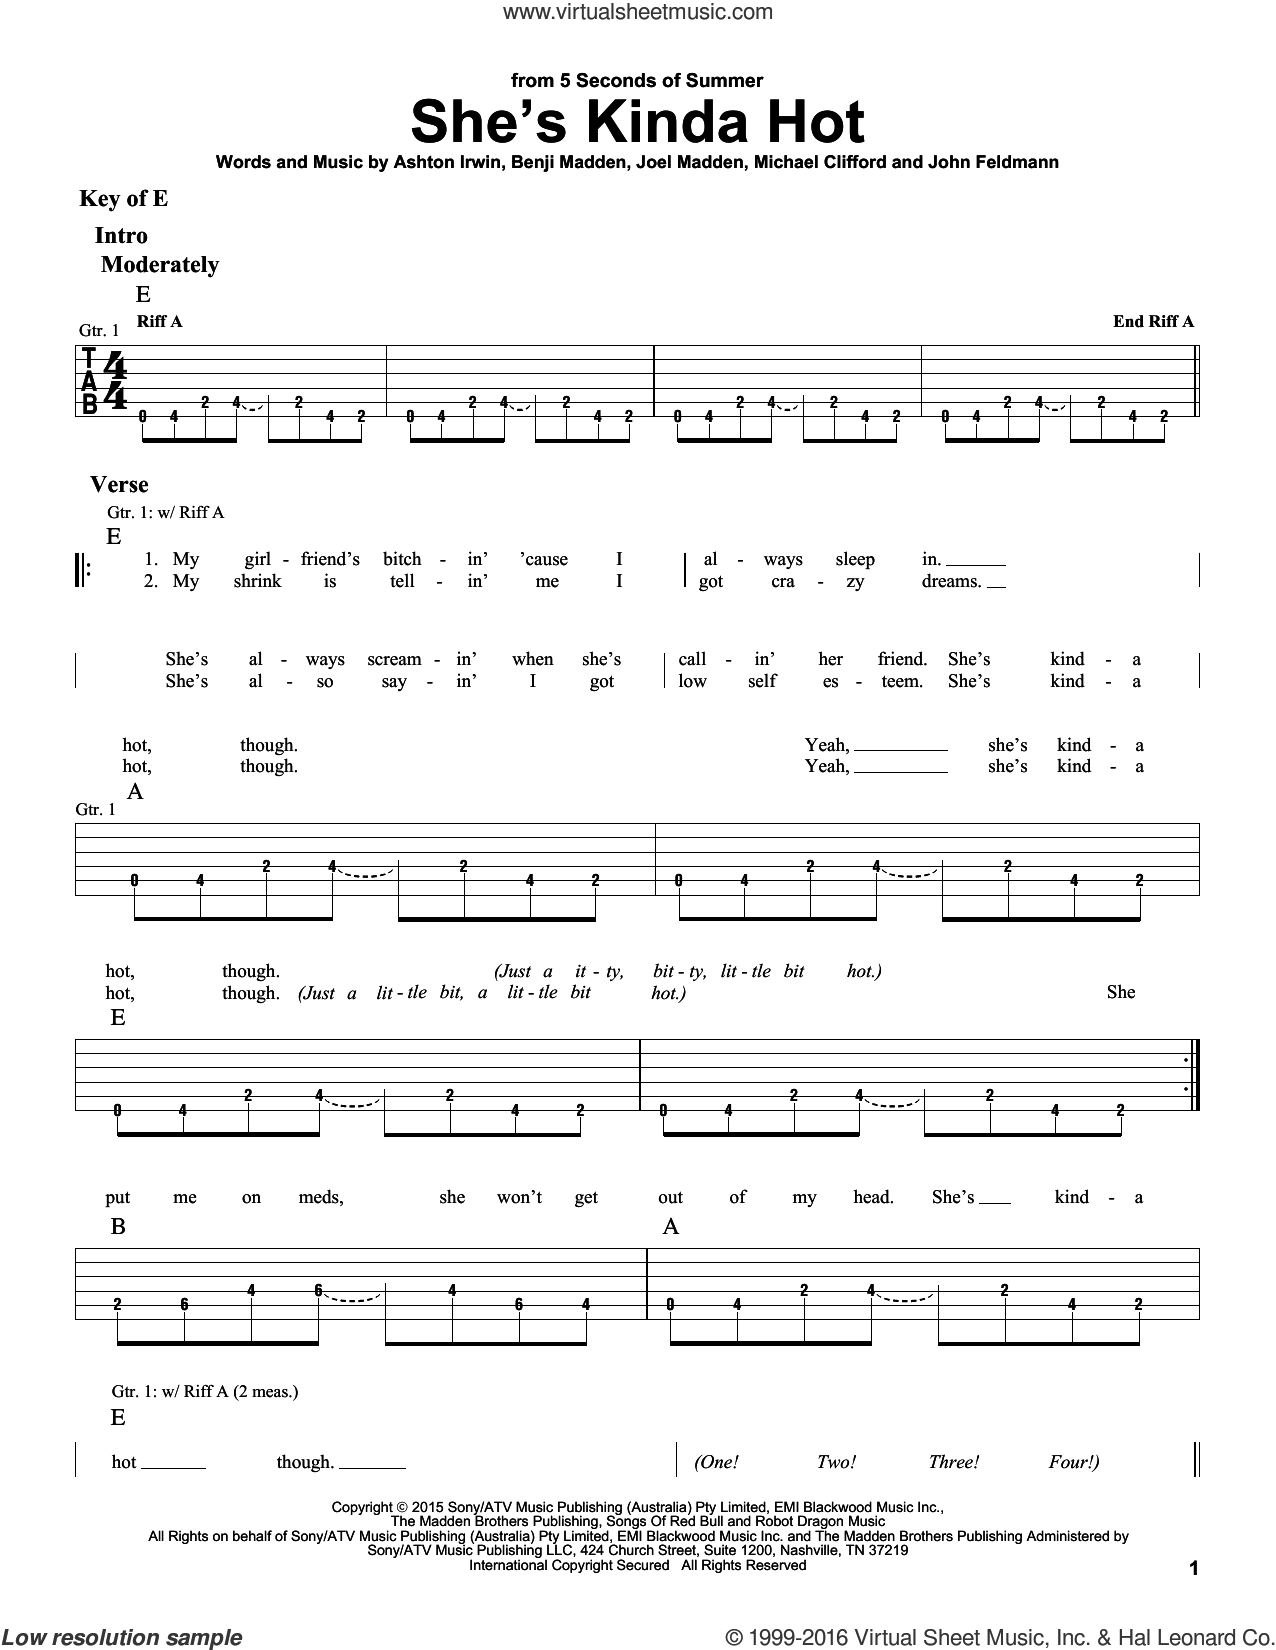 She's Kinda Hot sheet music for guitar solo (lead sheet) by Michael Clifford, Ashton Irwin, Benji Madden, Joel Madden and John Feldmann. Score Image Preview.